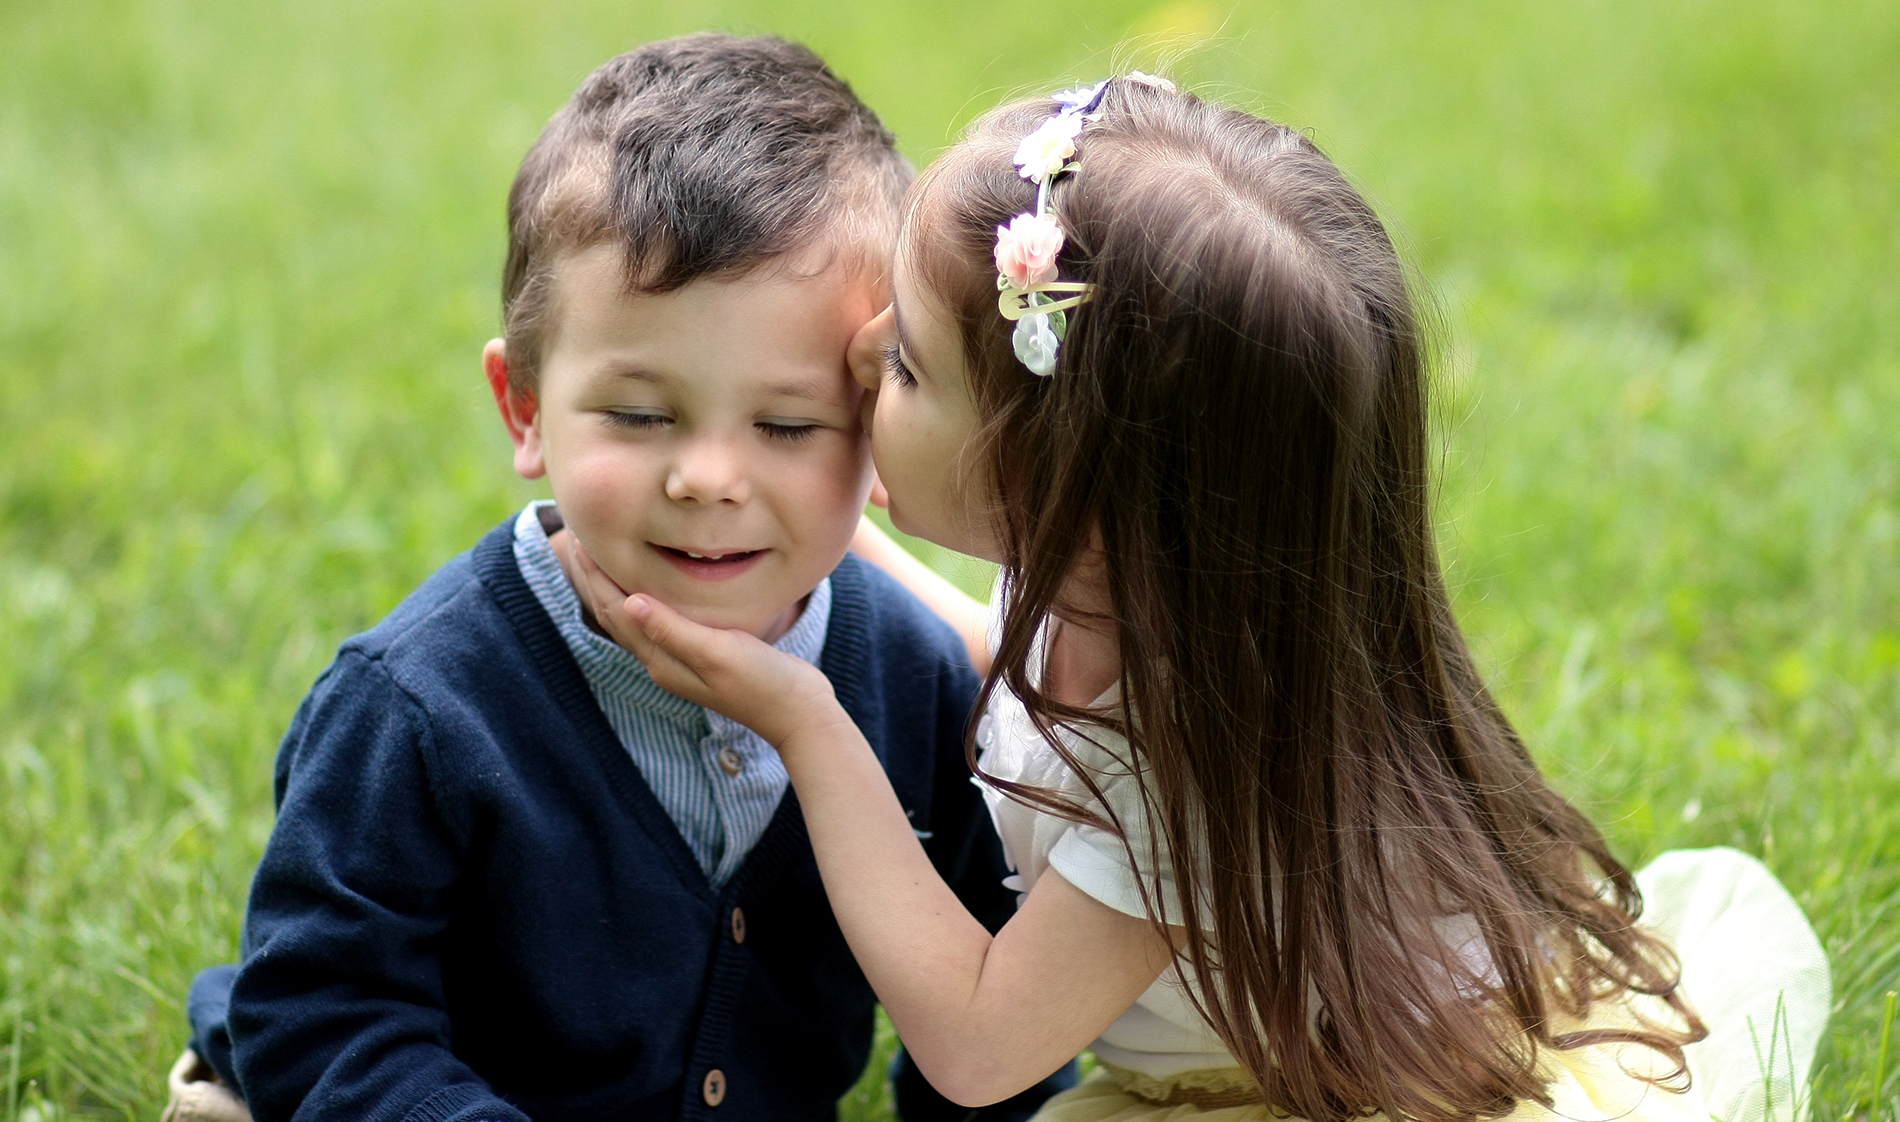 Kiss the boy on the cheek of a small girl 53761